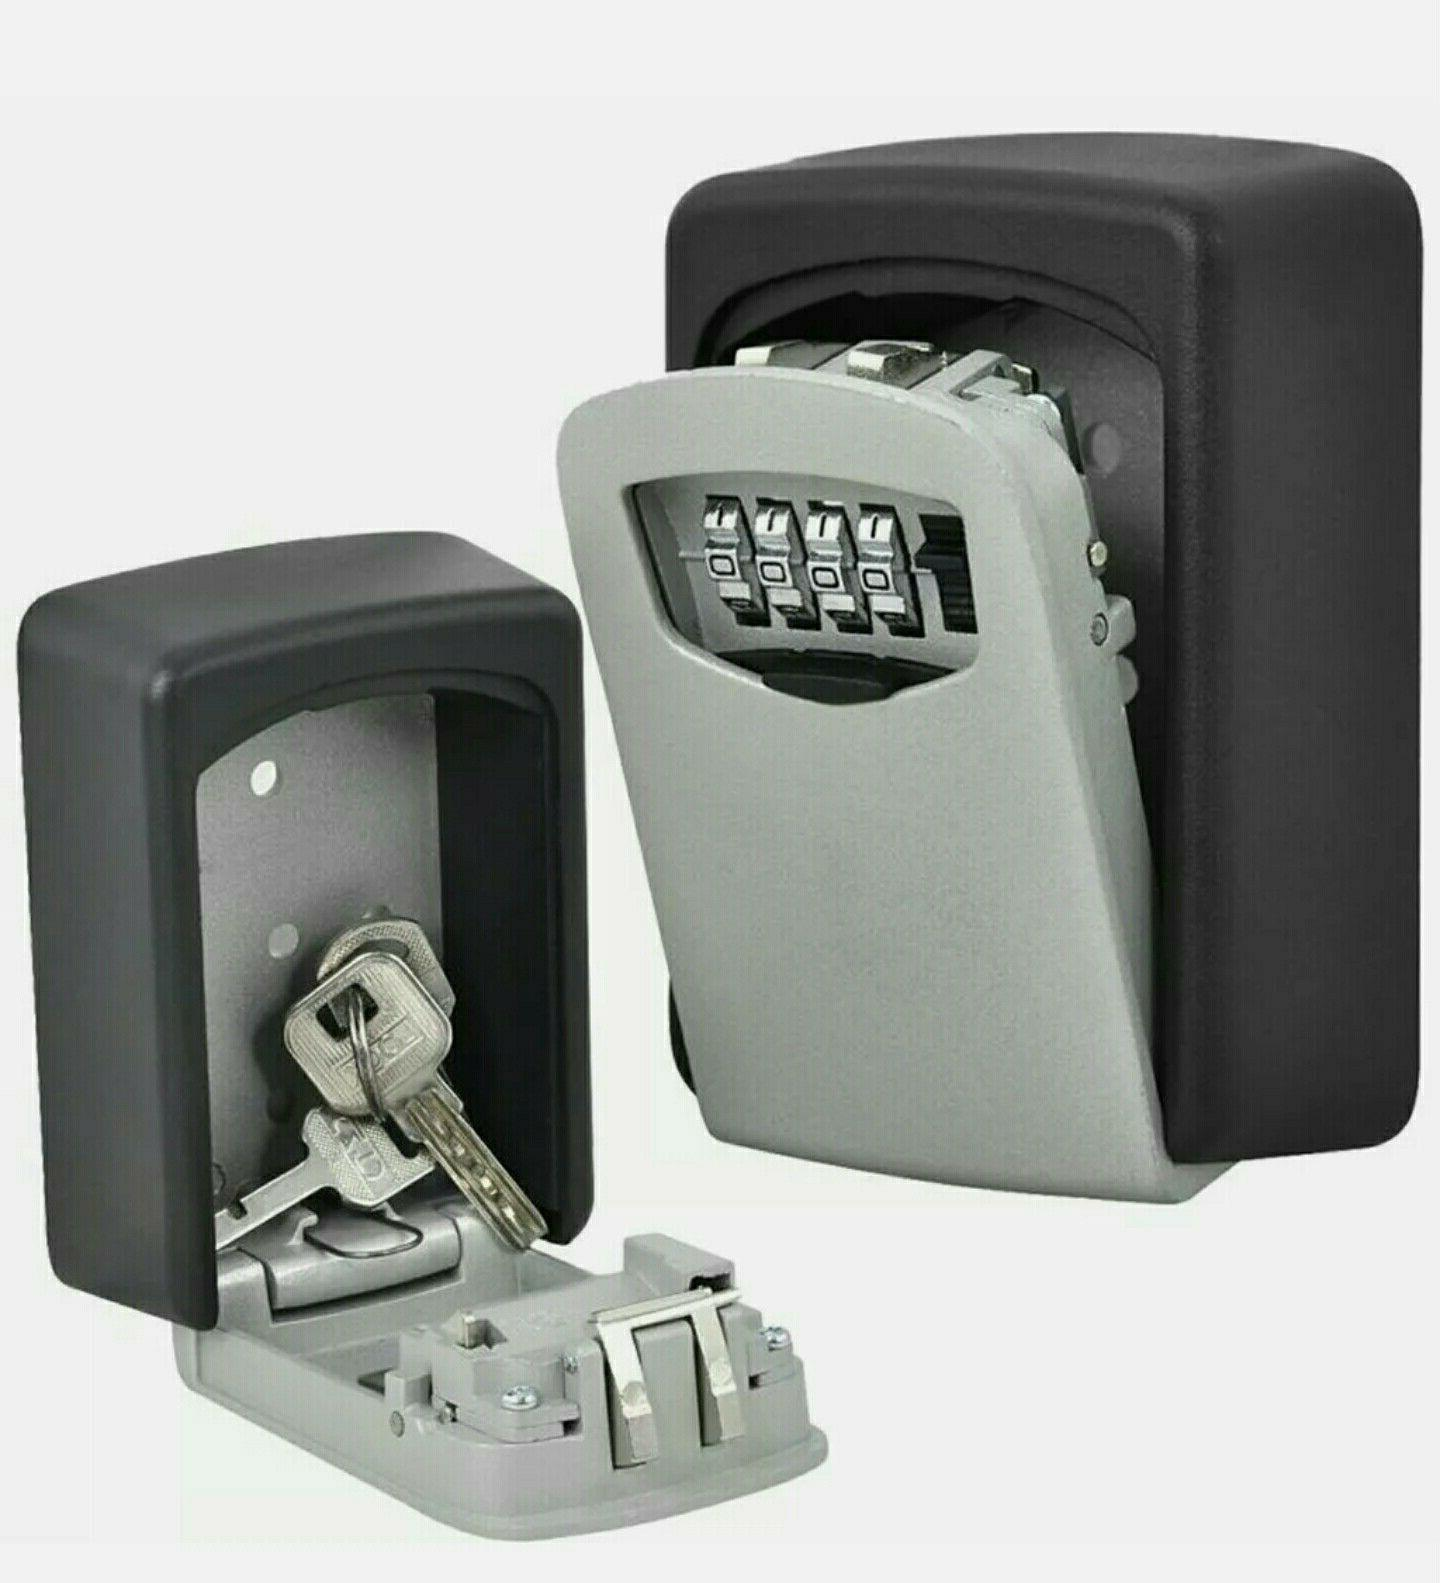 Outdoor Safe Key Lock with 4 Digit Security Code